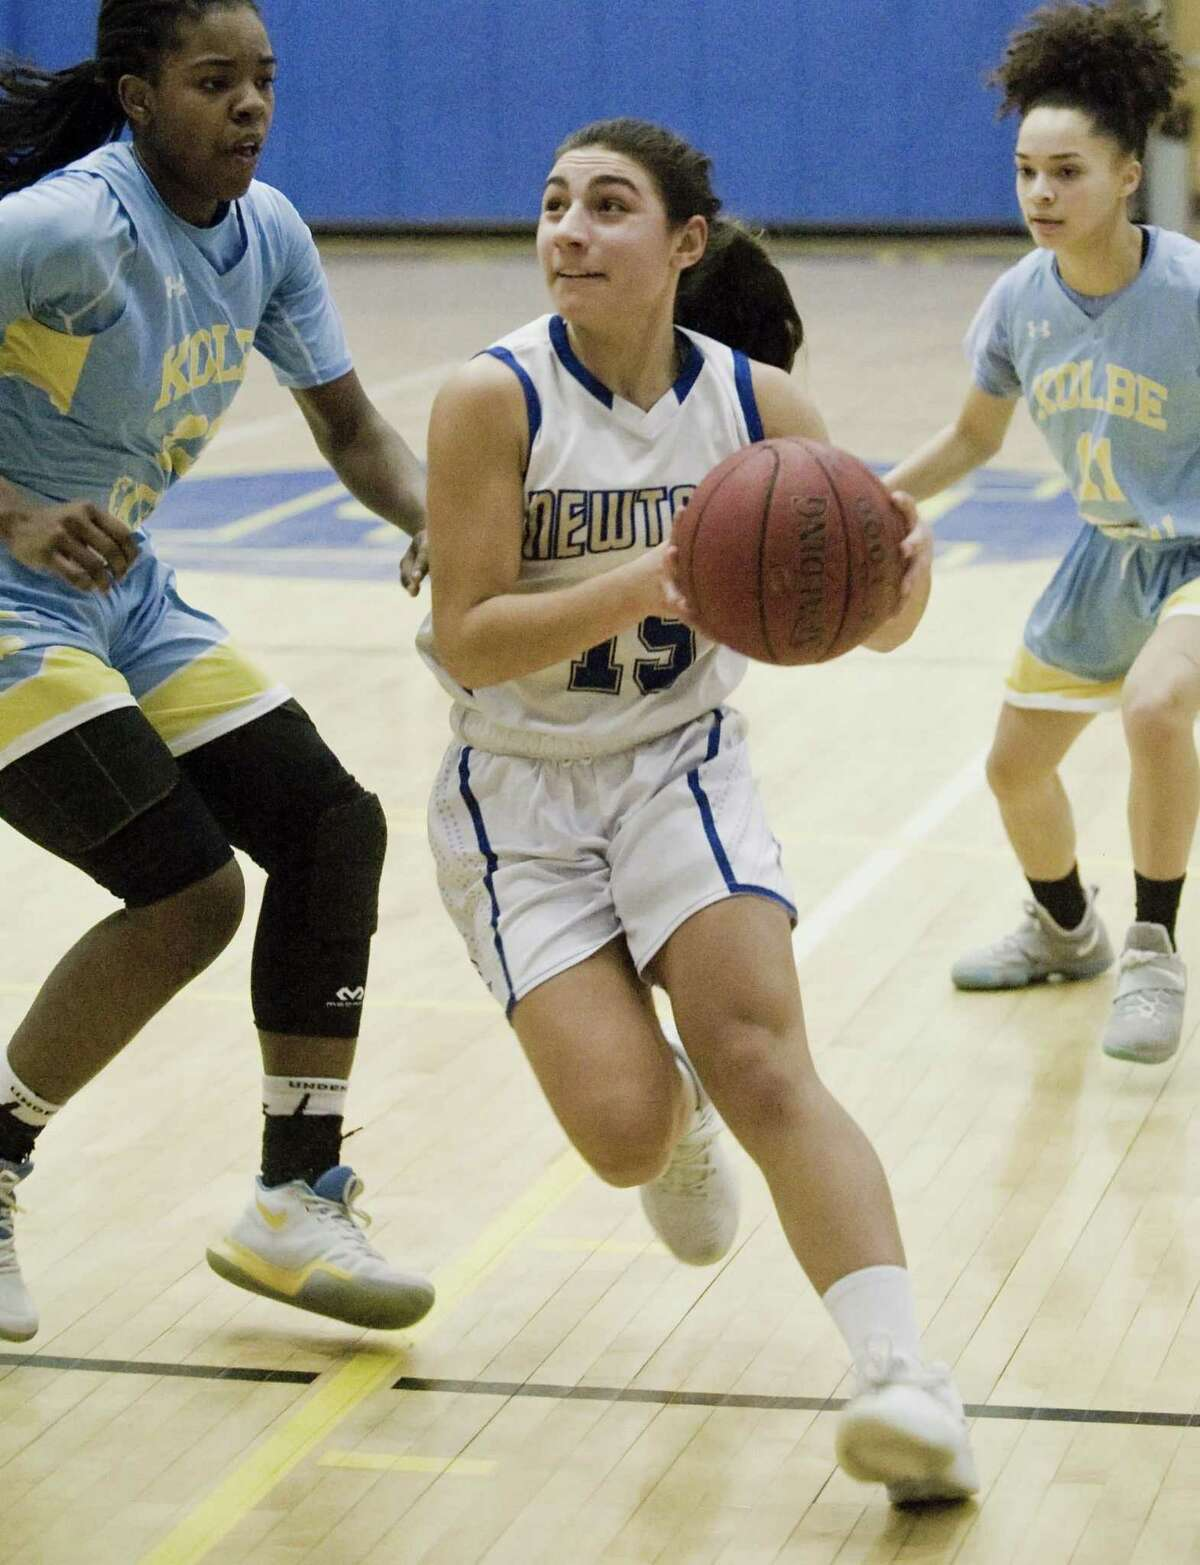 Newtown High School's Jacquelyn Matthews heads to the basket in the SWC Girls basketball semifinal against Kolbe Cathedral High School, played at Newtown. Monday, Feb. 19, 2018